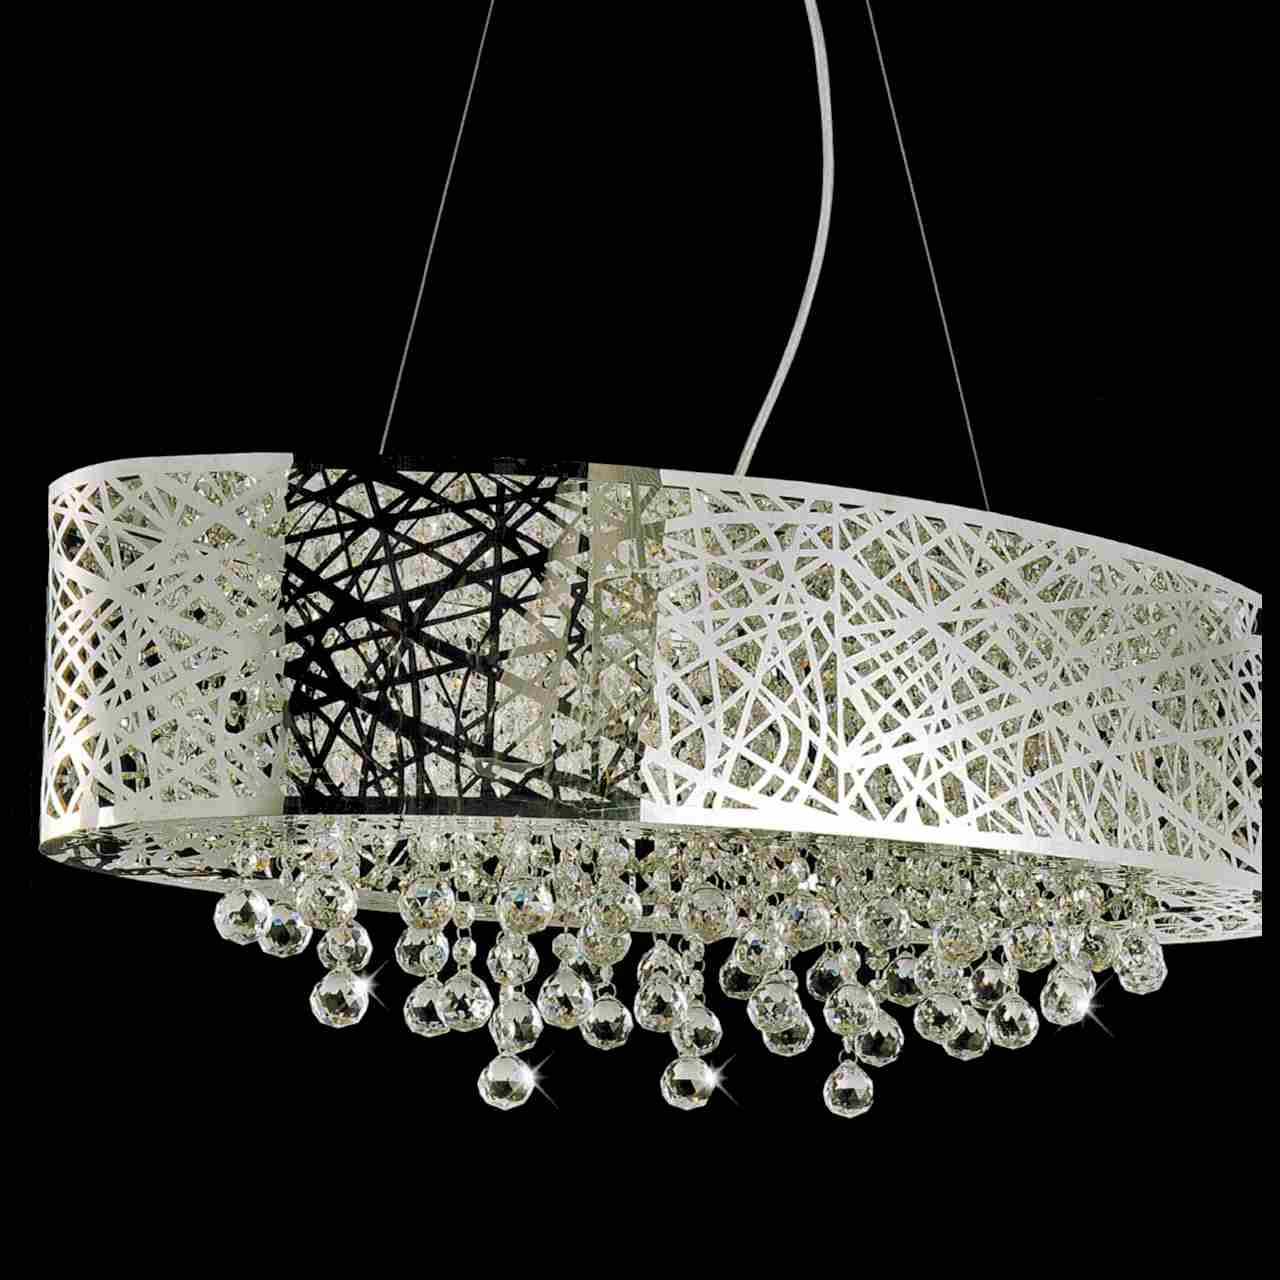 Brizzo lighting stores 32 web modern laser cut drum shade crystal picture of 32 web modern laser cut drum shade crystal oval pendant chandelier stainless steel mozeypictures Gallery